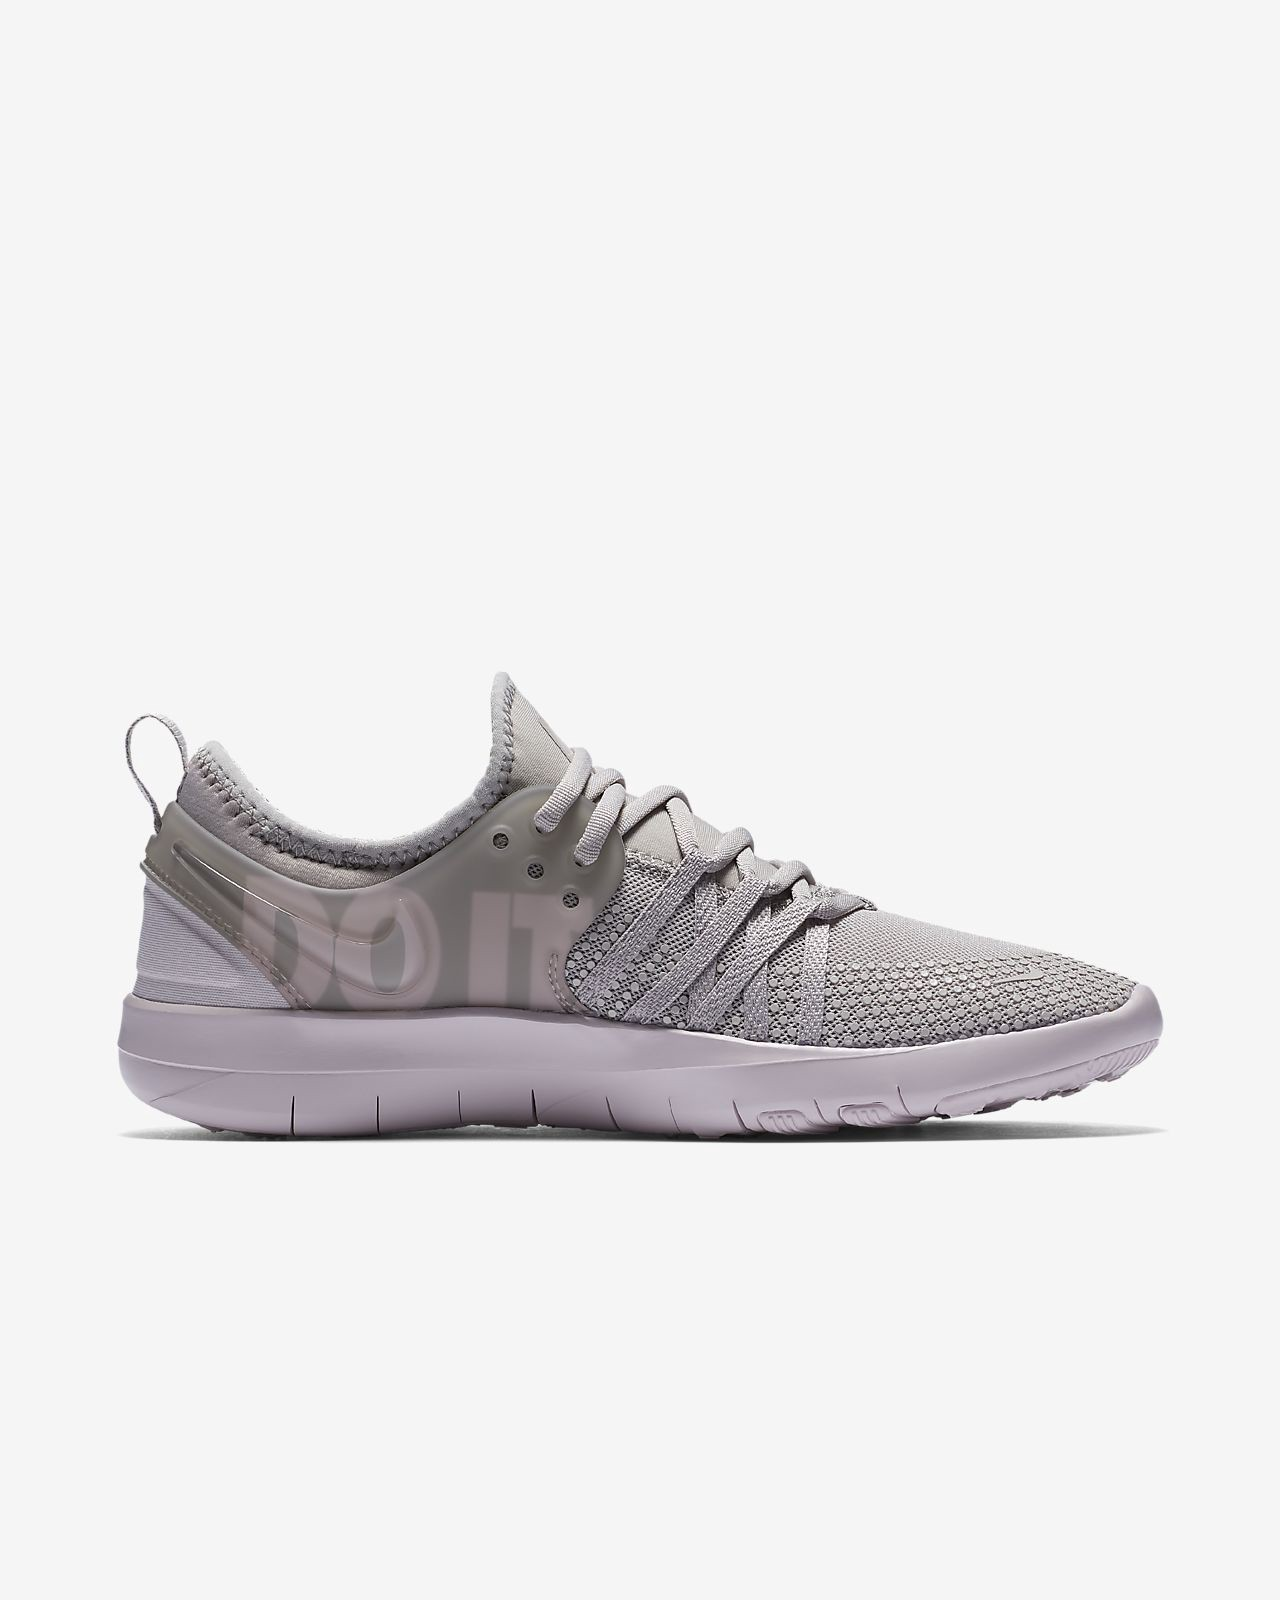 74d4695eb050 Nike Free Trainer 7 Premium Women s Bodyweight Training